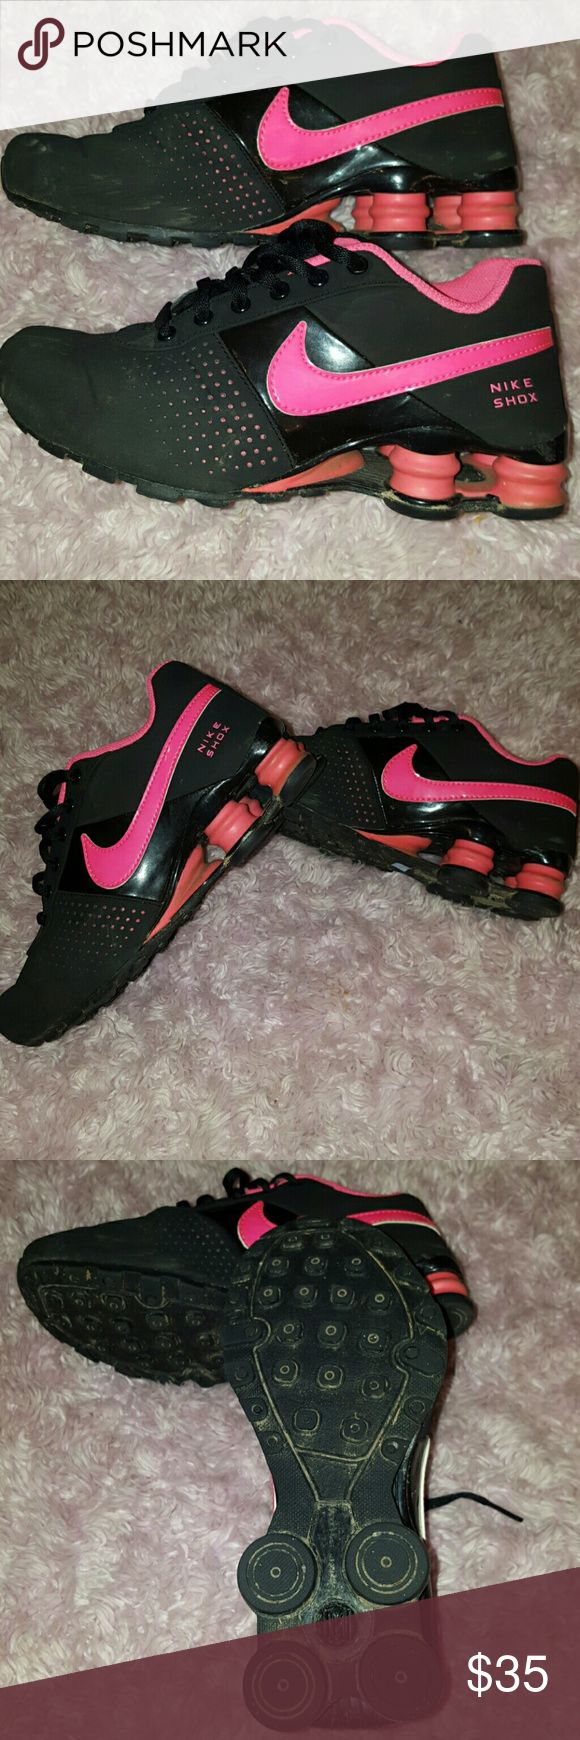 Hot Pink & Black Nike SHOX LIKE NEW Size youth 4Y Nike SHOX Hot Pink and Black. Velvety feel black part. Only wore 3 times. Will need minor wiping, but colors are vibrant. Great for Back to School. Nike Shoes Sneakers